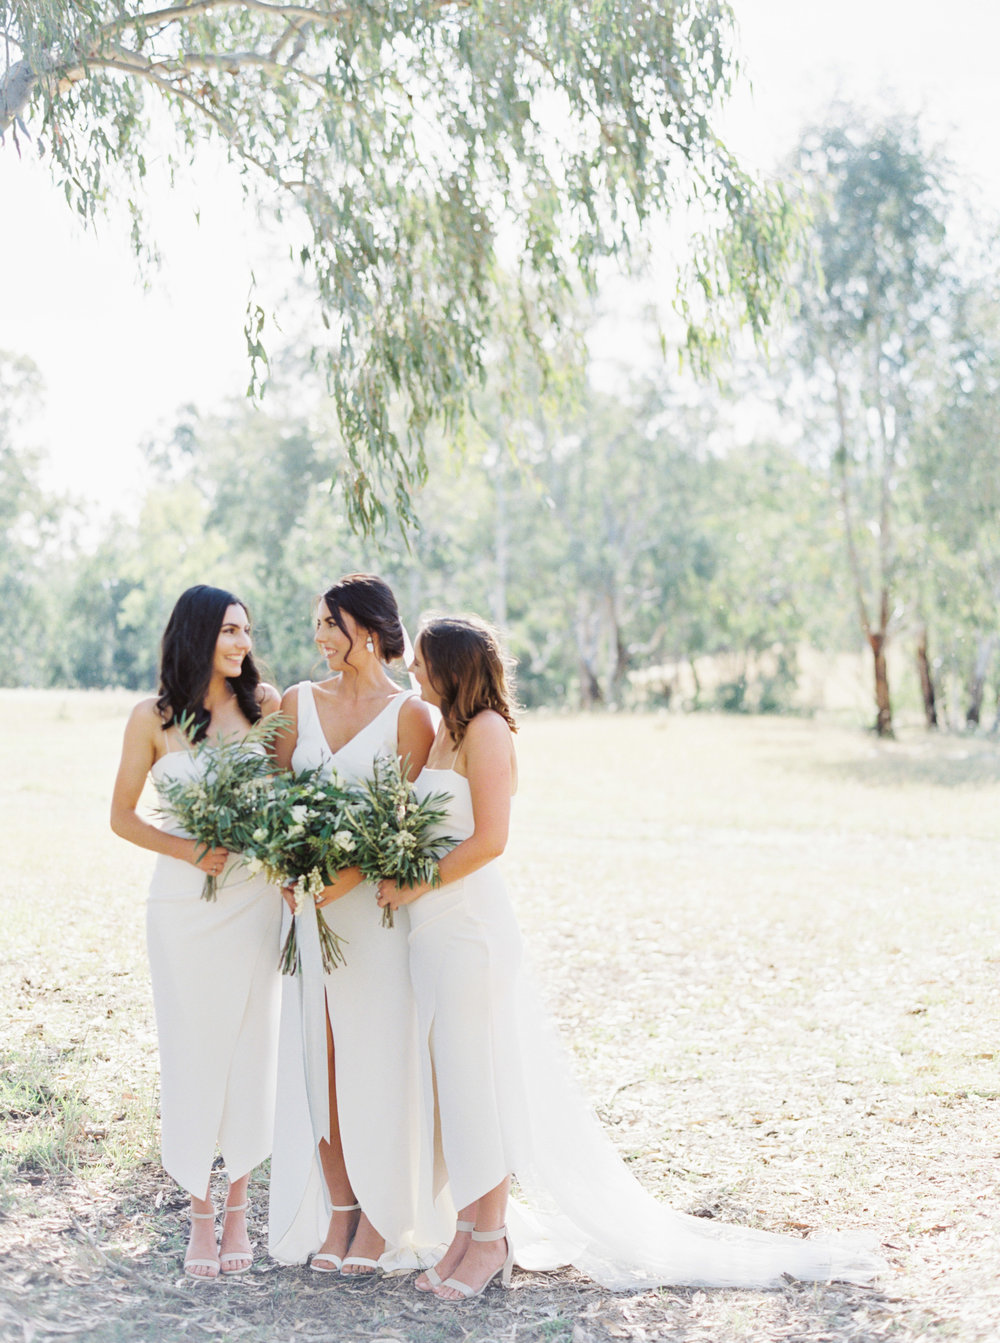 00046- Olive Tree Mediterranean Wedding in Mudgee NSW Australia Fine Art Film Wedding Lifestyle Photographer Sheri McMahon_.jpg